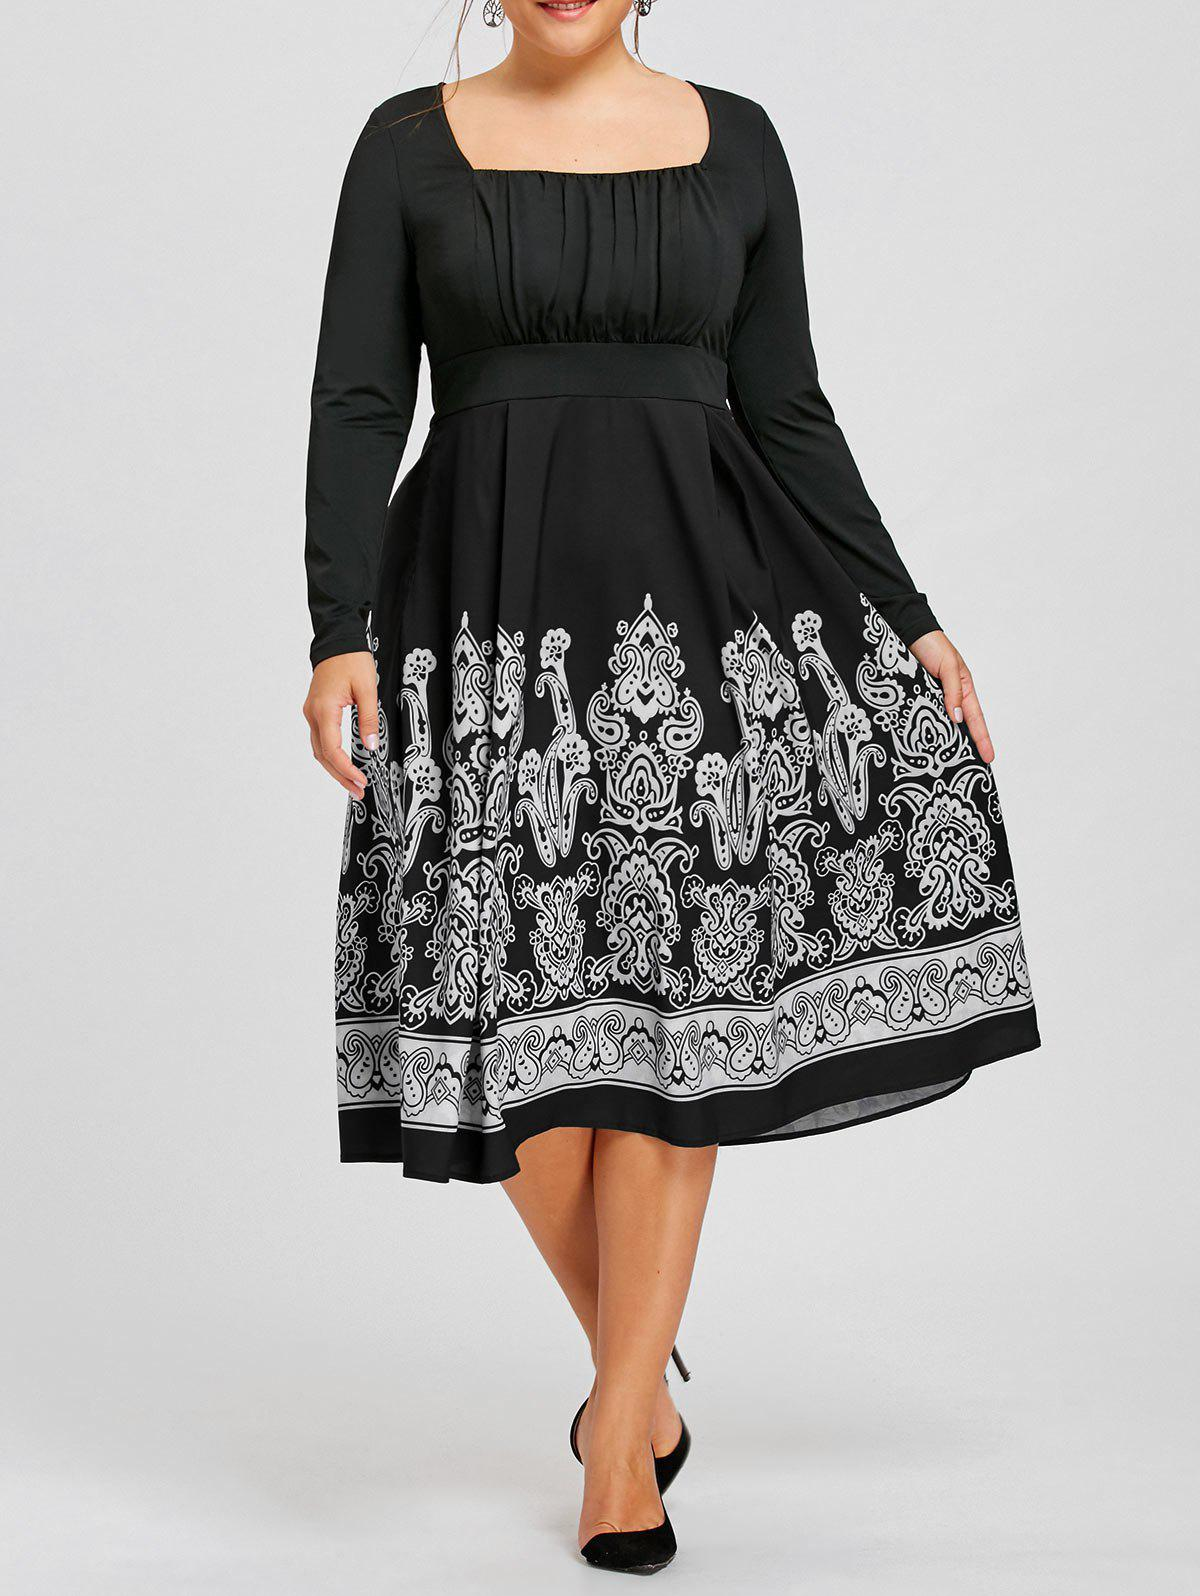 Plus Size Long Sleeve Paisley Print Midi DressWOMEN<br><br>Size: 5XL; Color: BLACK; Style: Brief; Material: Polyester,Spandex; Silhouette: A-Line; Dresses Length: Mid-Calf; Neckline: Square Collar; Sleeve Length: Long Sleeves; Embellishment: Ruched; Pattern Type: Paisley; With Belt: No; Season: Fall,Spring; Weight: 0.3730kg; Package Contents: 1 x Dress;